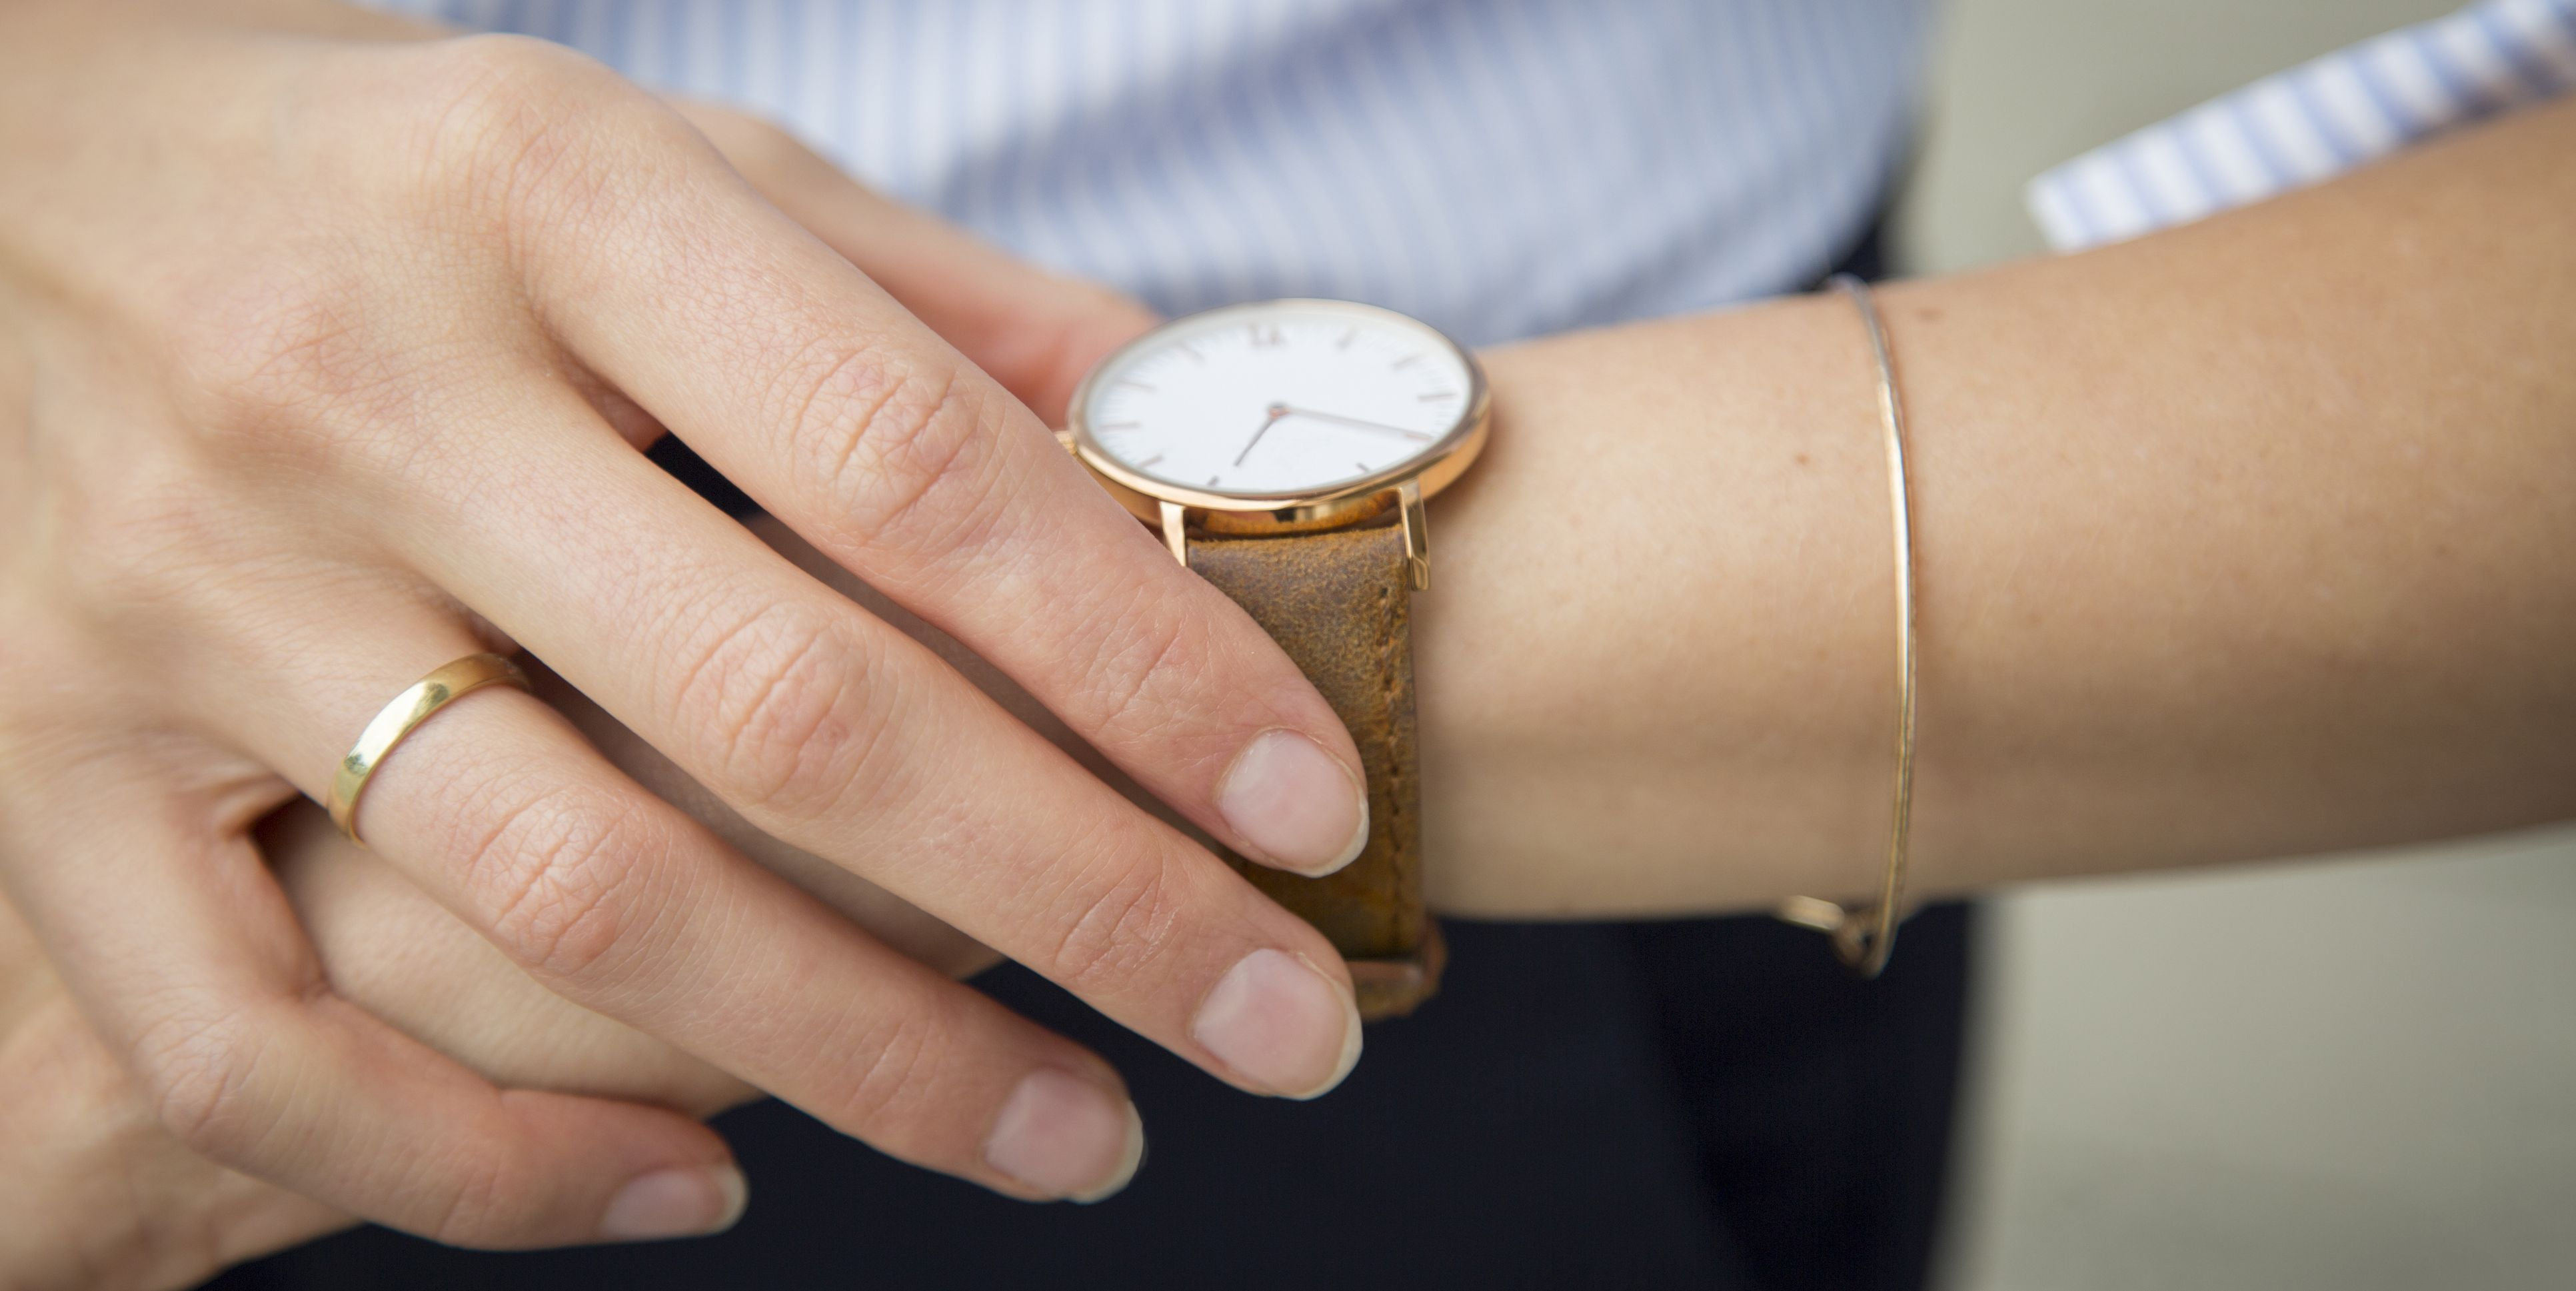 The Newest Trend in Serious Watch Collecting? Women